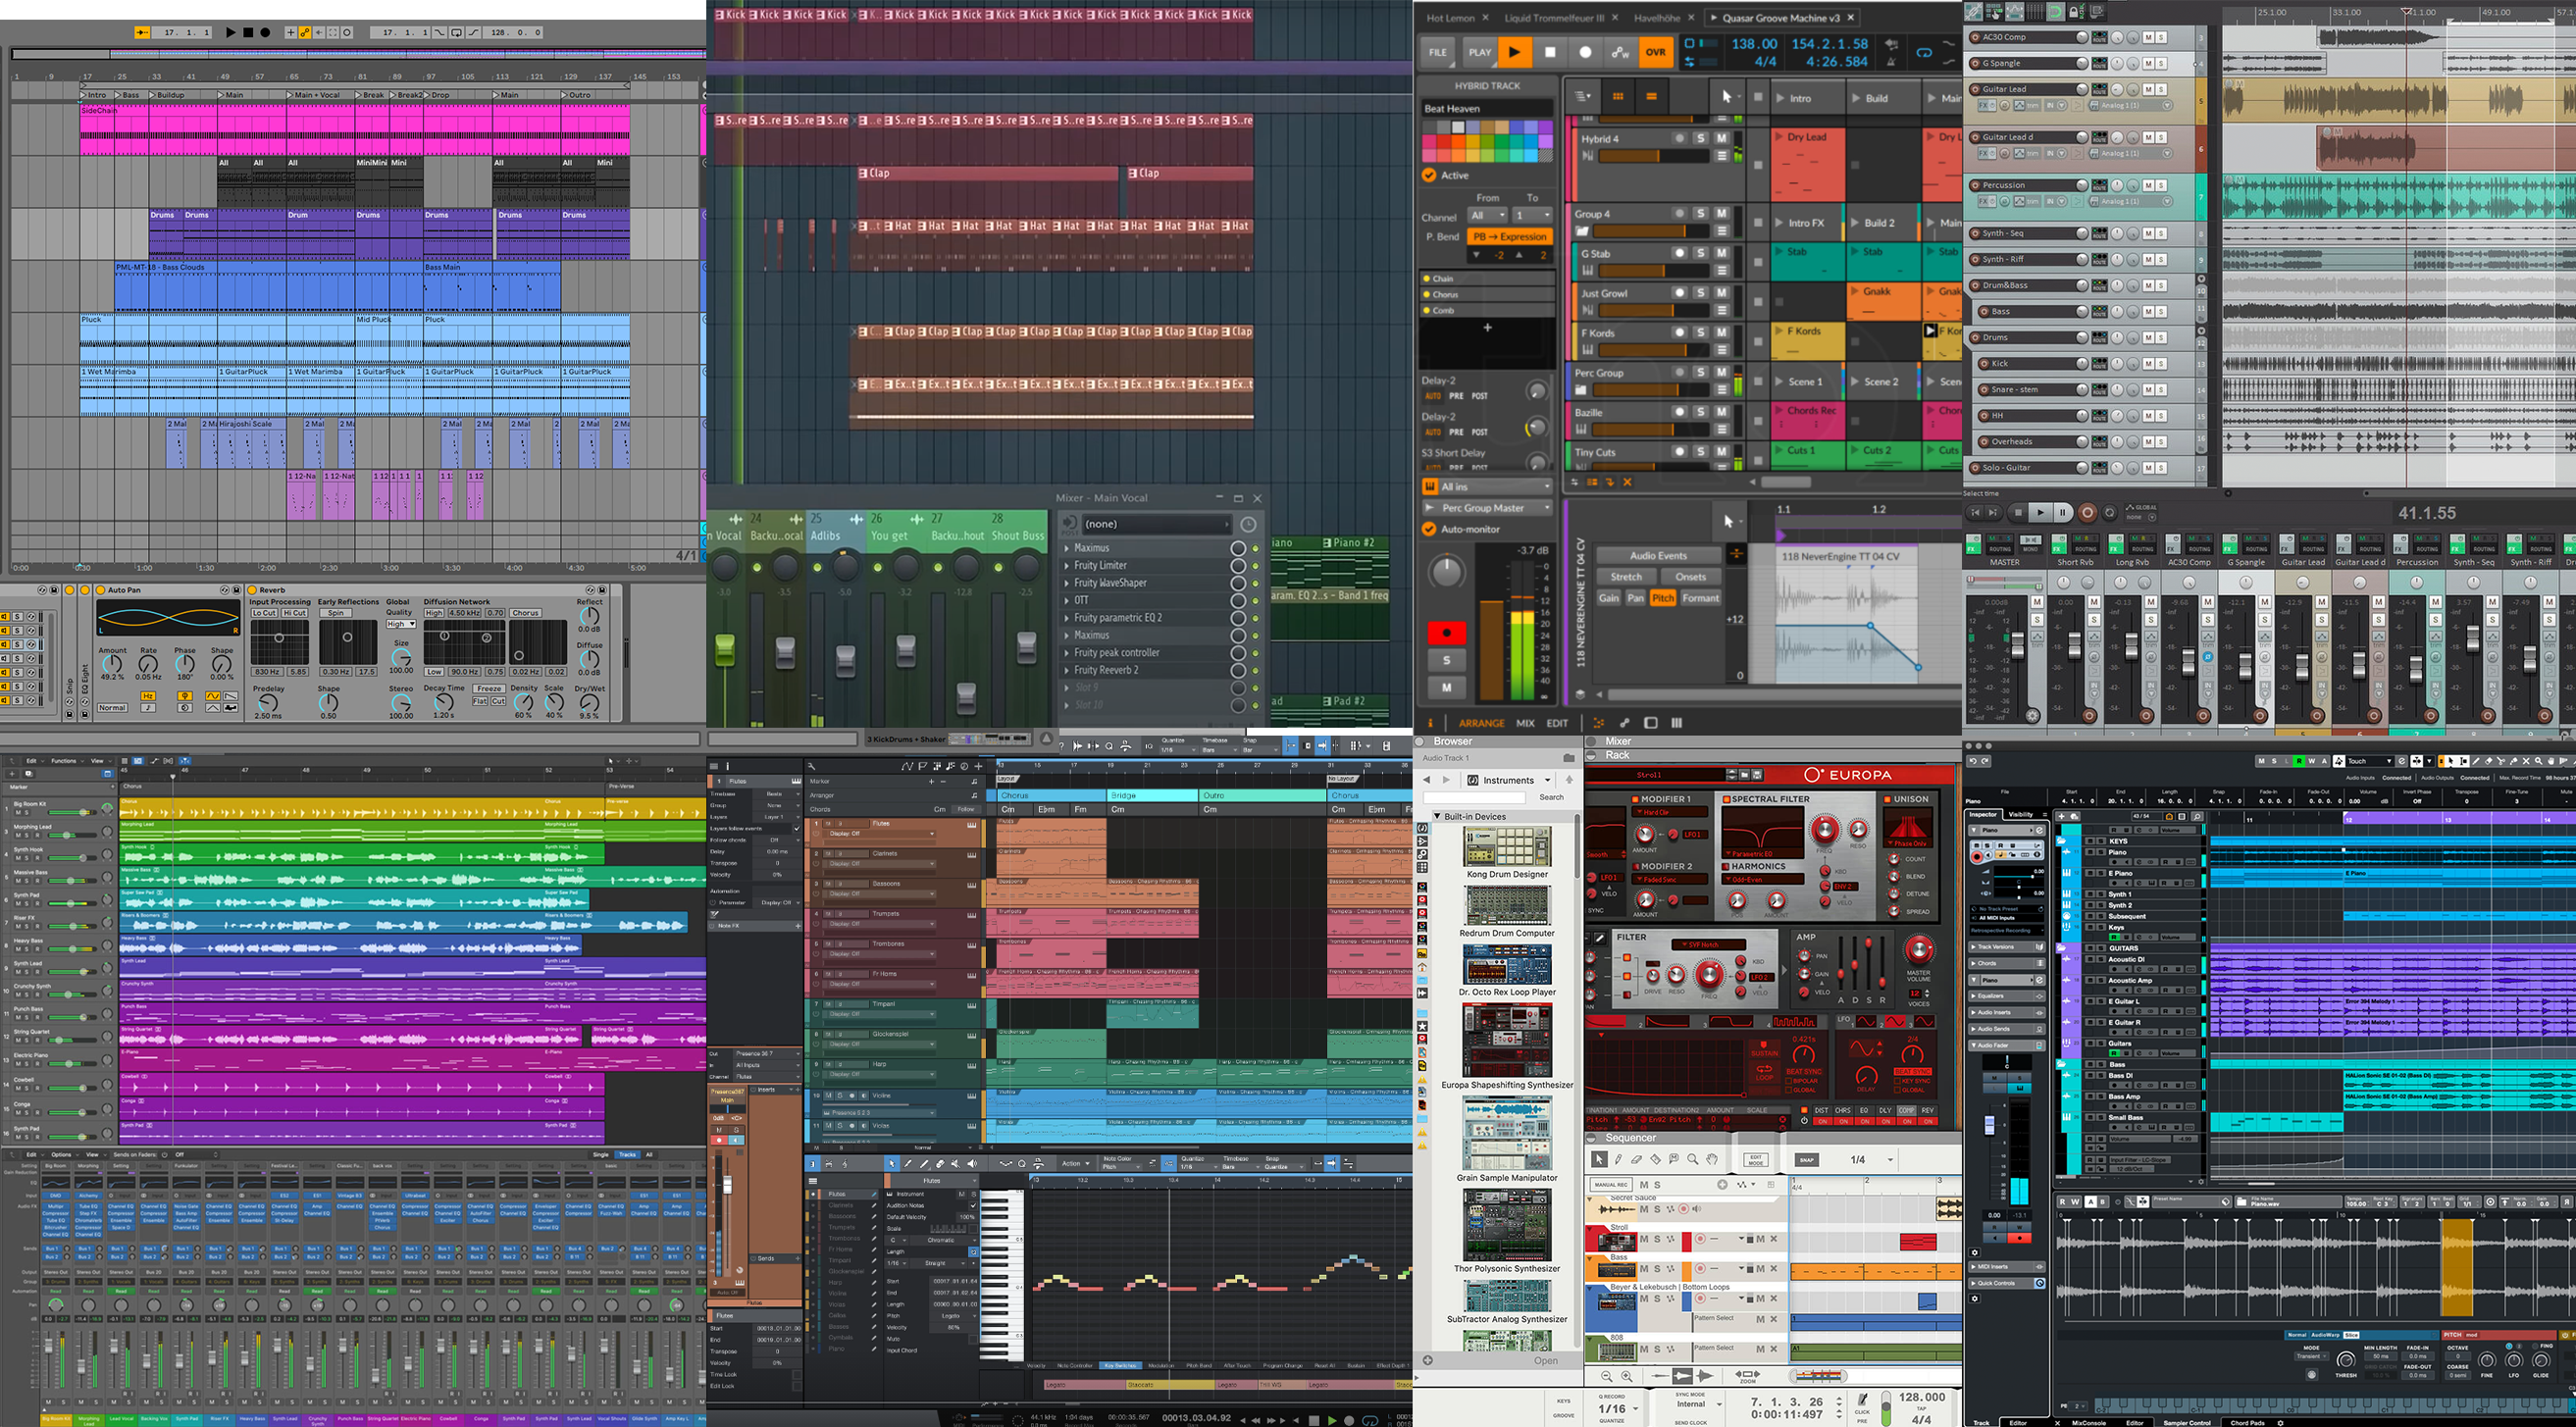 Guide Top 8 Best Music Production Software (2021)